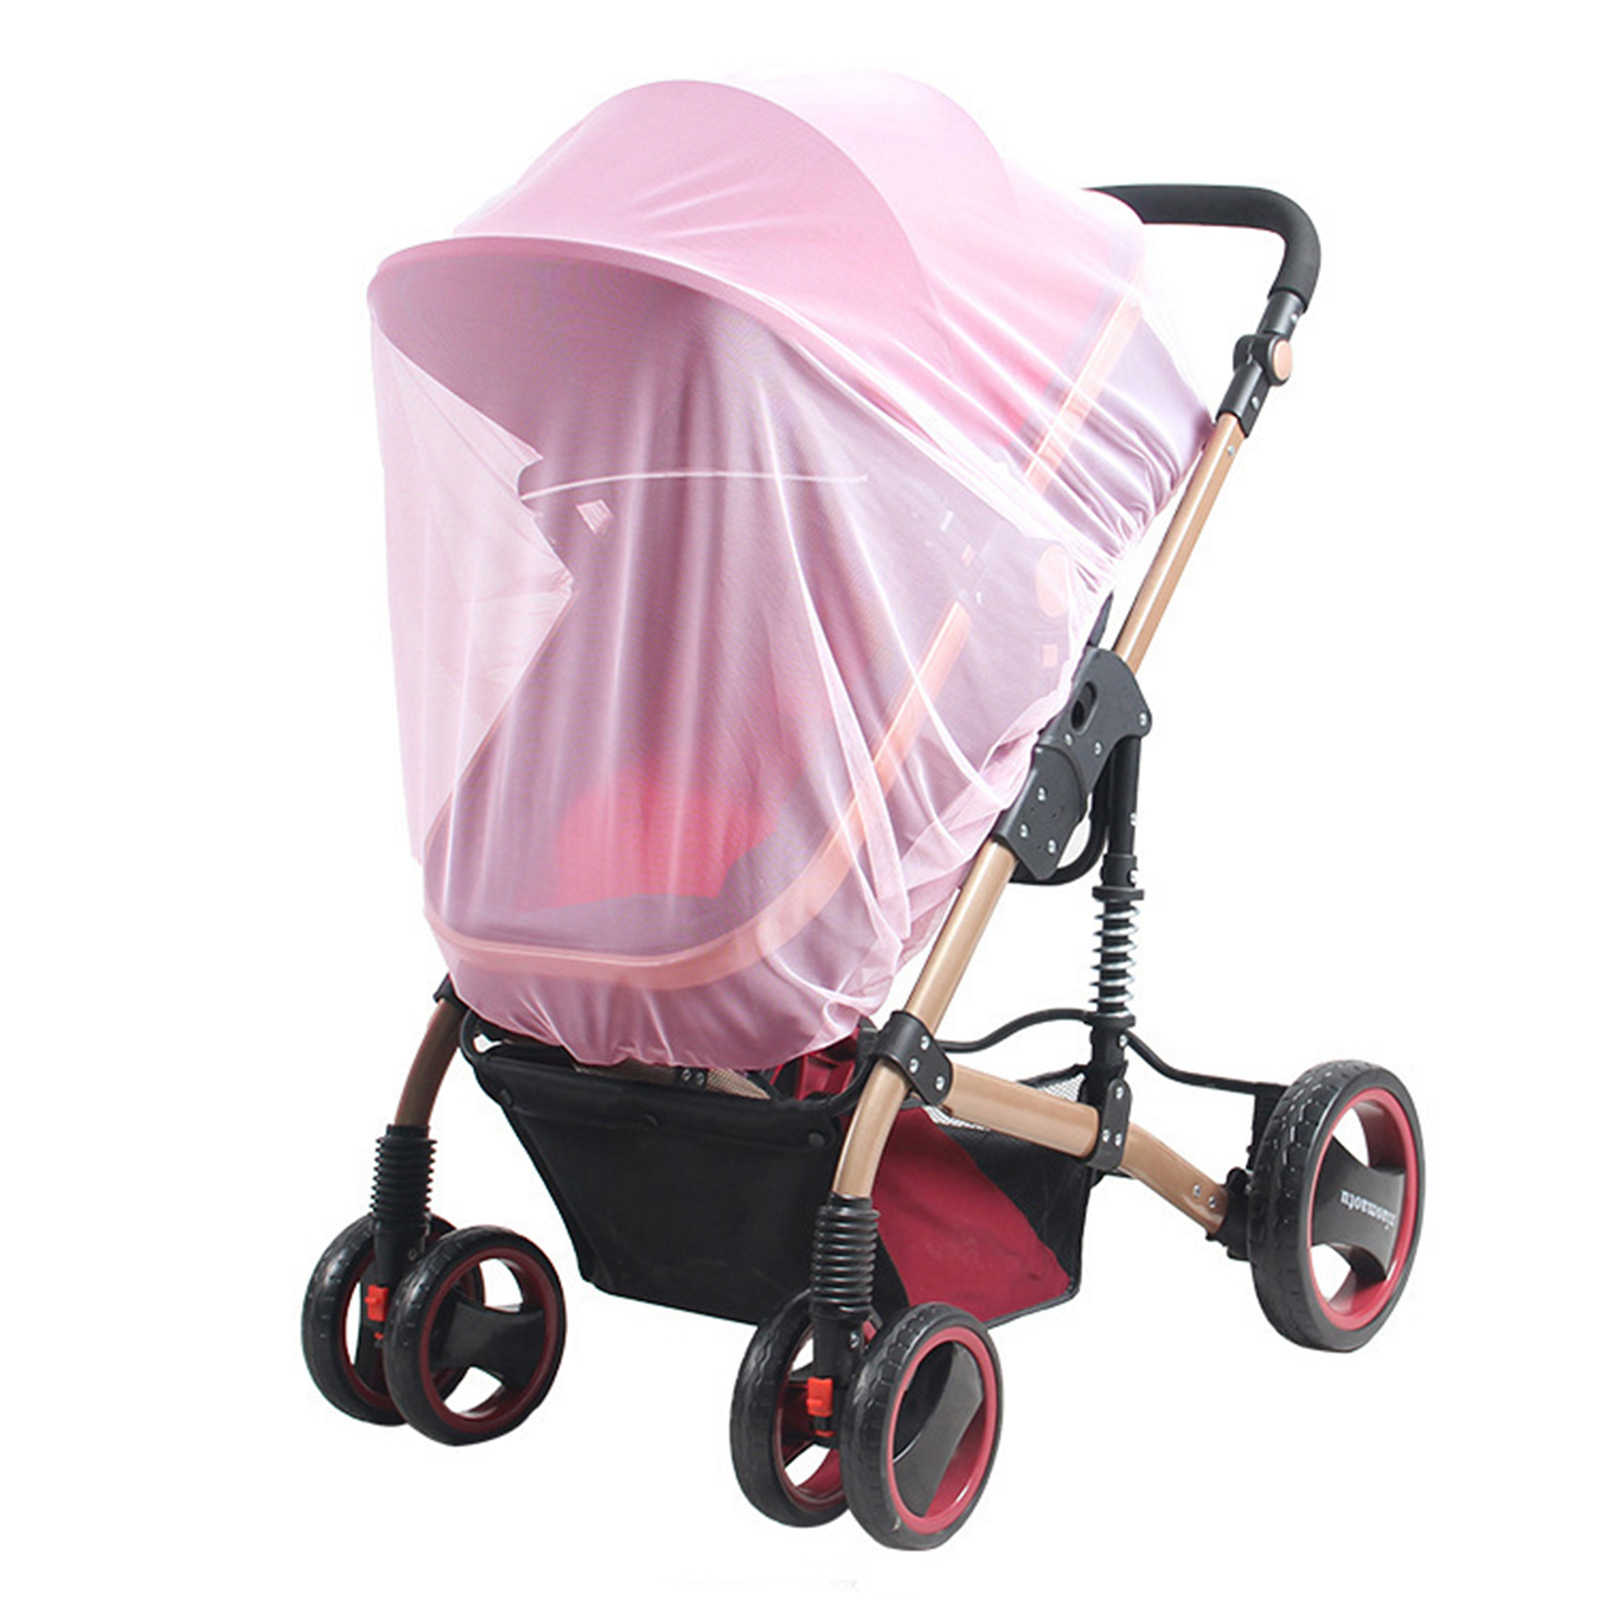 2019 New Baby Stroller Pushchair Mosquito Insect Shield Net Safe Infants Protection Mesh Stroller Accessories Cart Mosquito Net